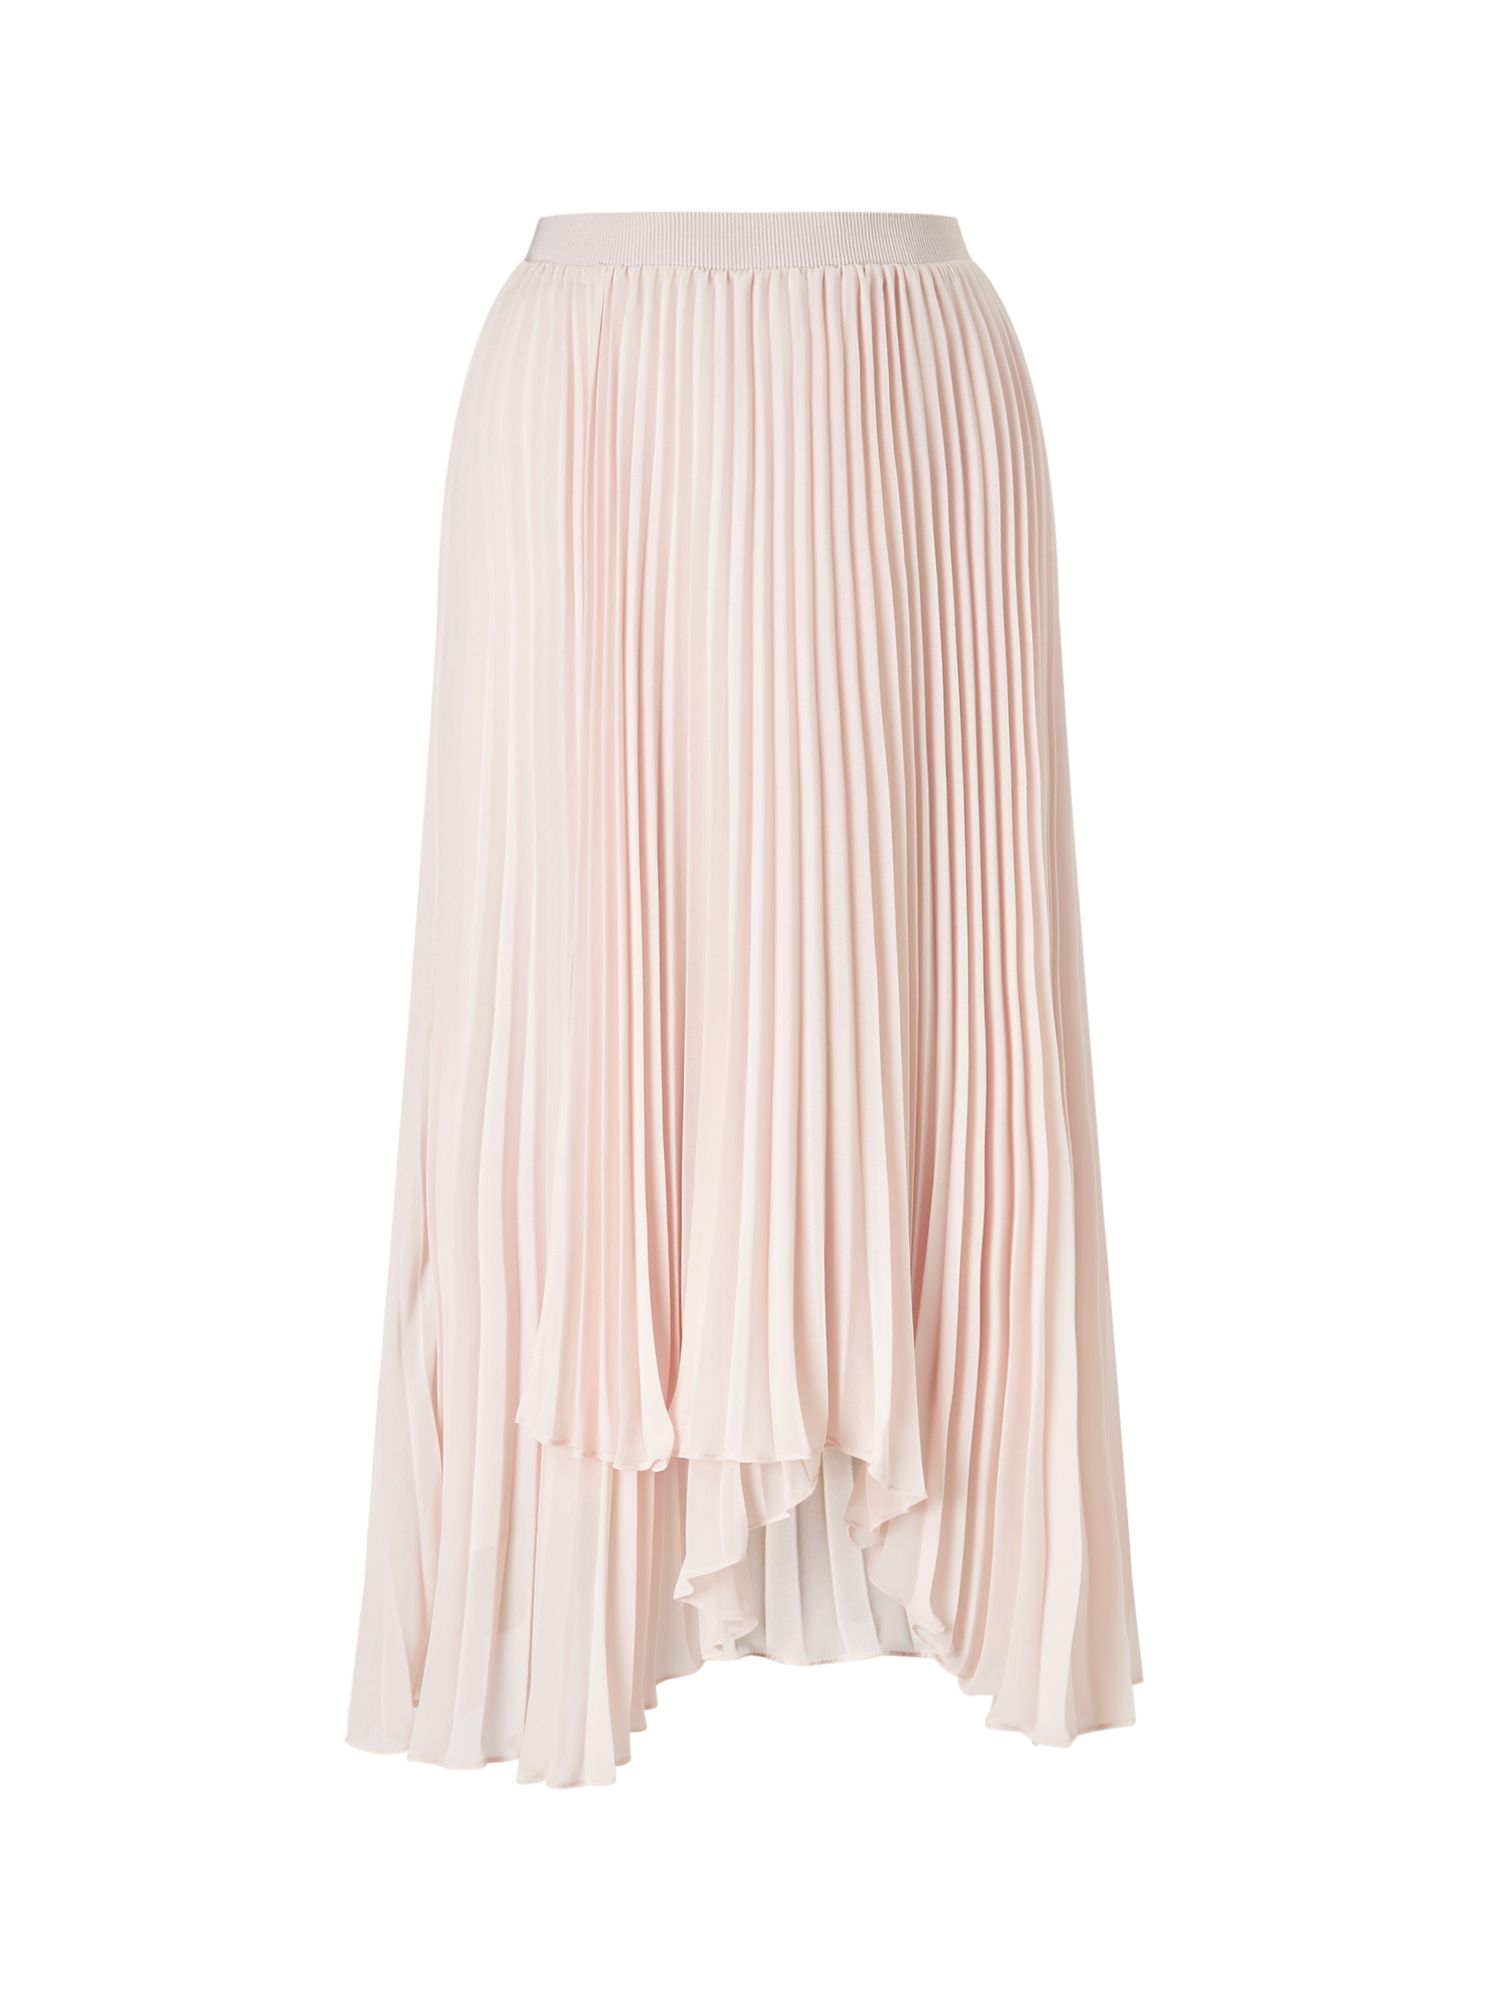 Jacques Vert High Lo Plisse Skirt, Neutral